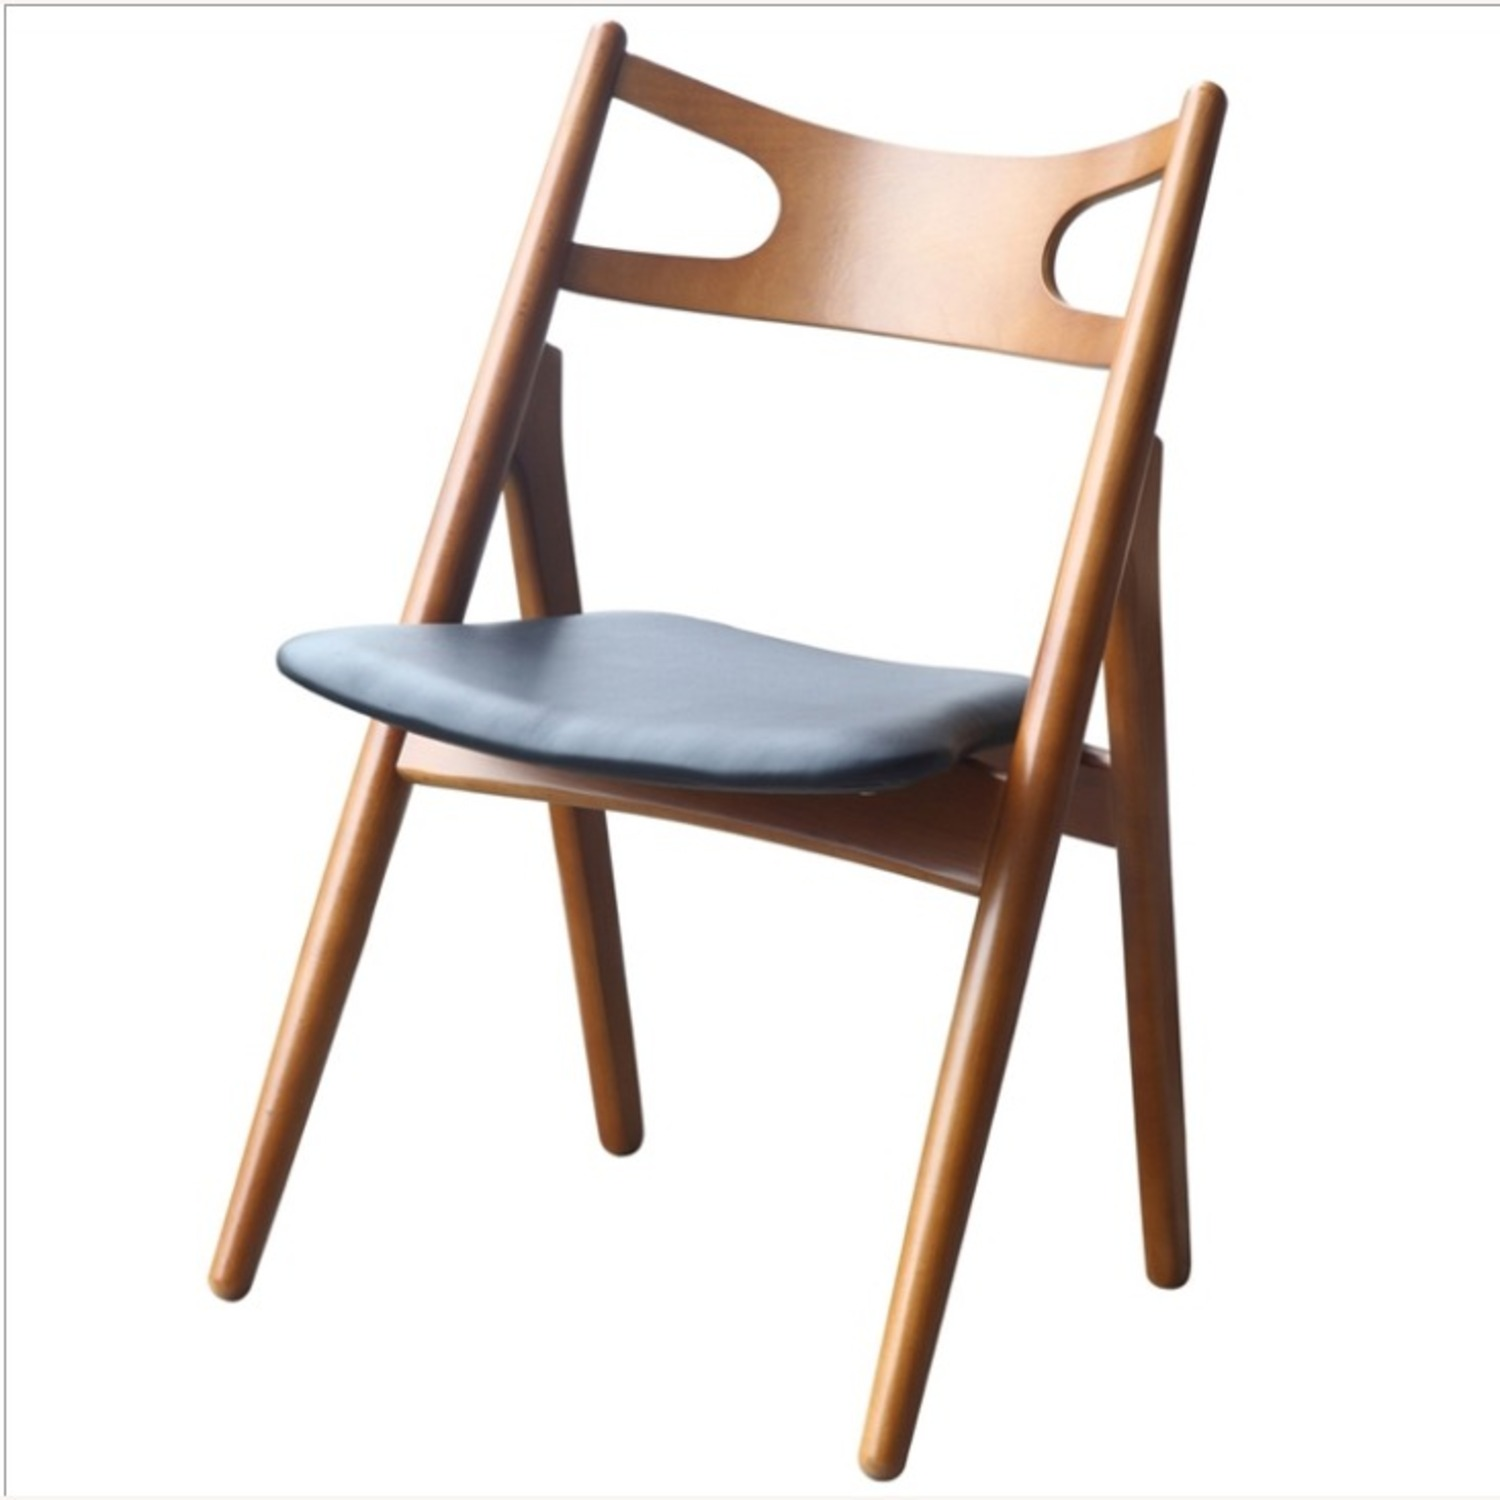 Modern Dining Chair In Walnut Wood Frame - image-2